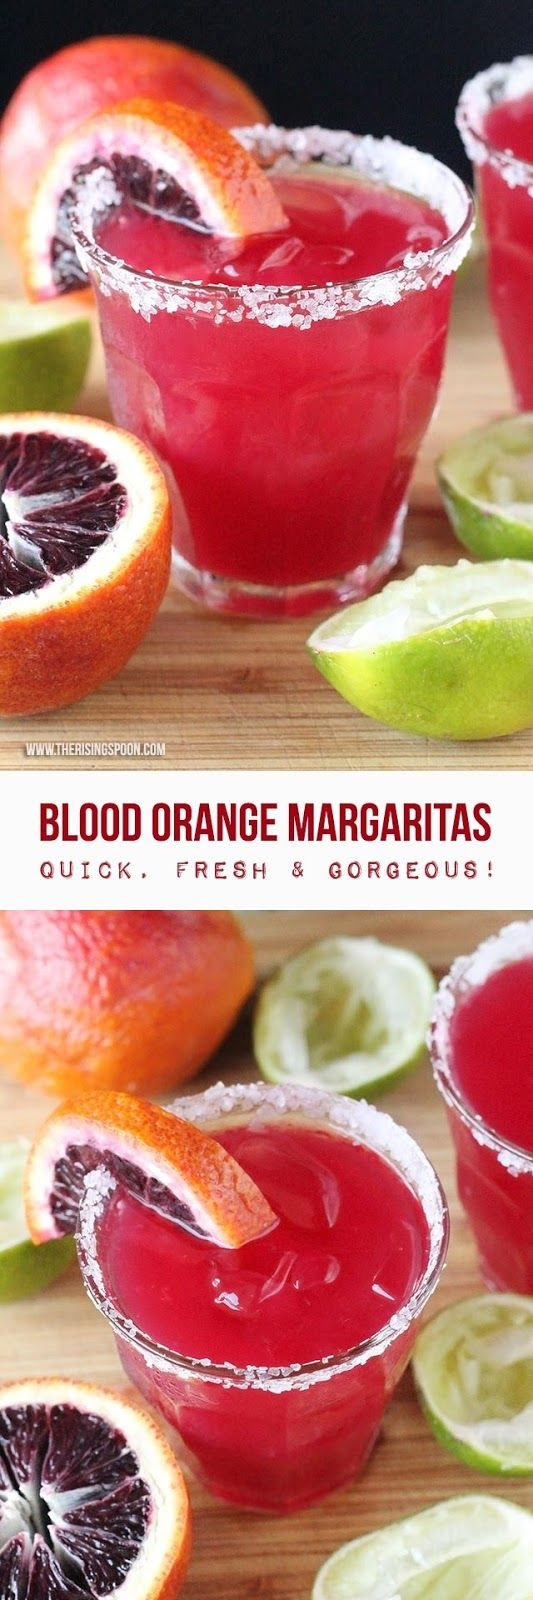 Homemade margaritas made with fresh blood orange juice, limes, raw honey, and 100% agave silver tequila. This drink recipe looks beautiful (blood oranges give it a wonderful hue) and goes down easy!